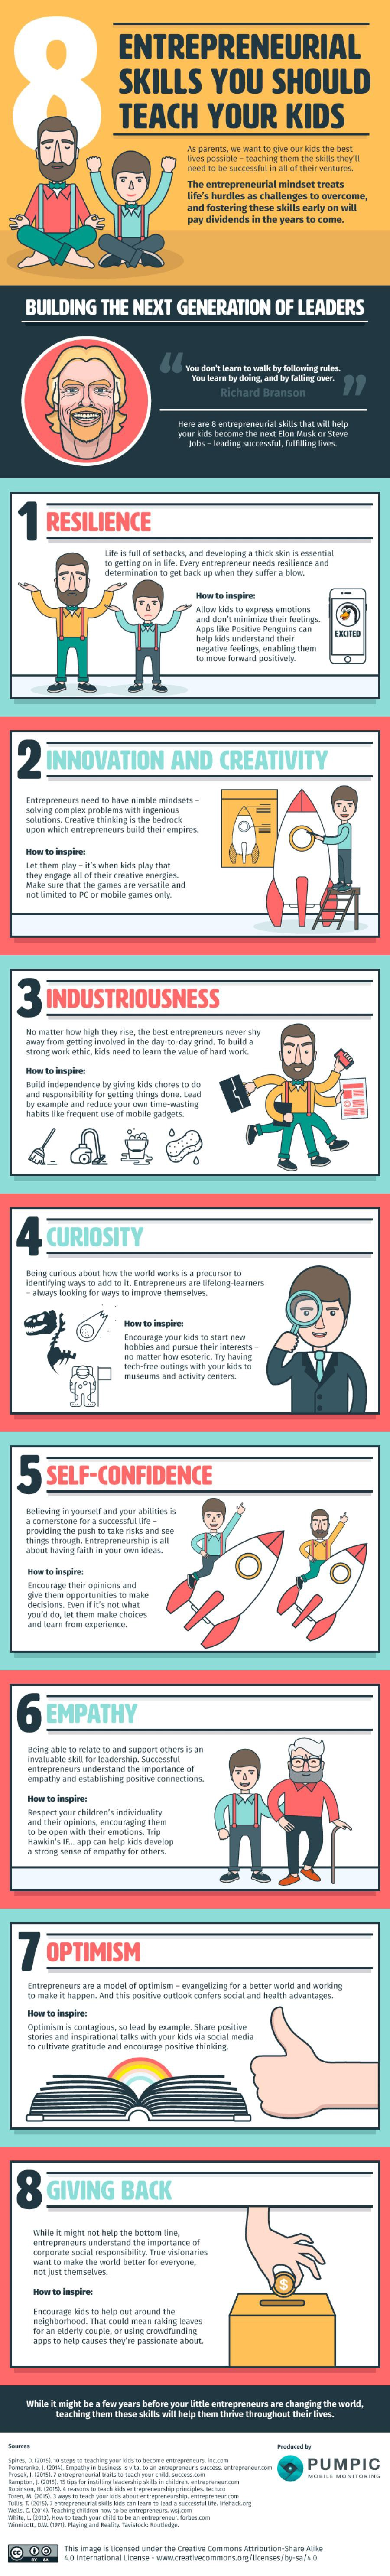 What to learn to make life easier: 8 useful skills